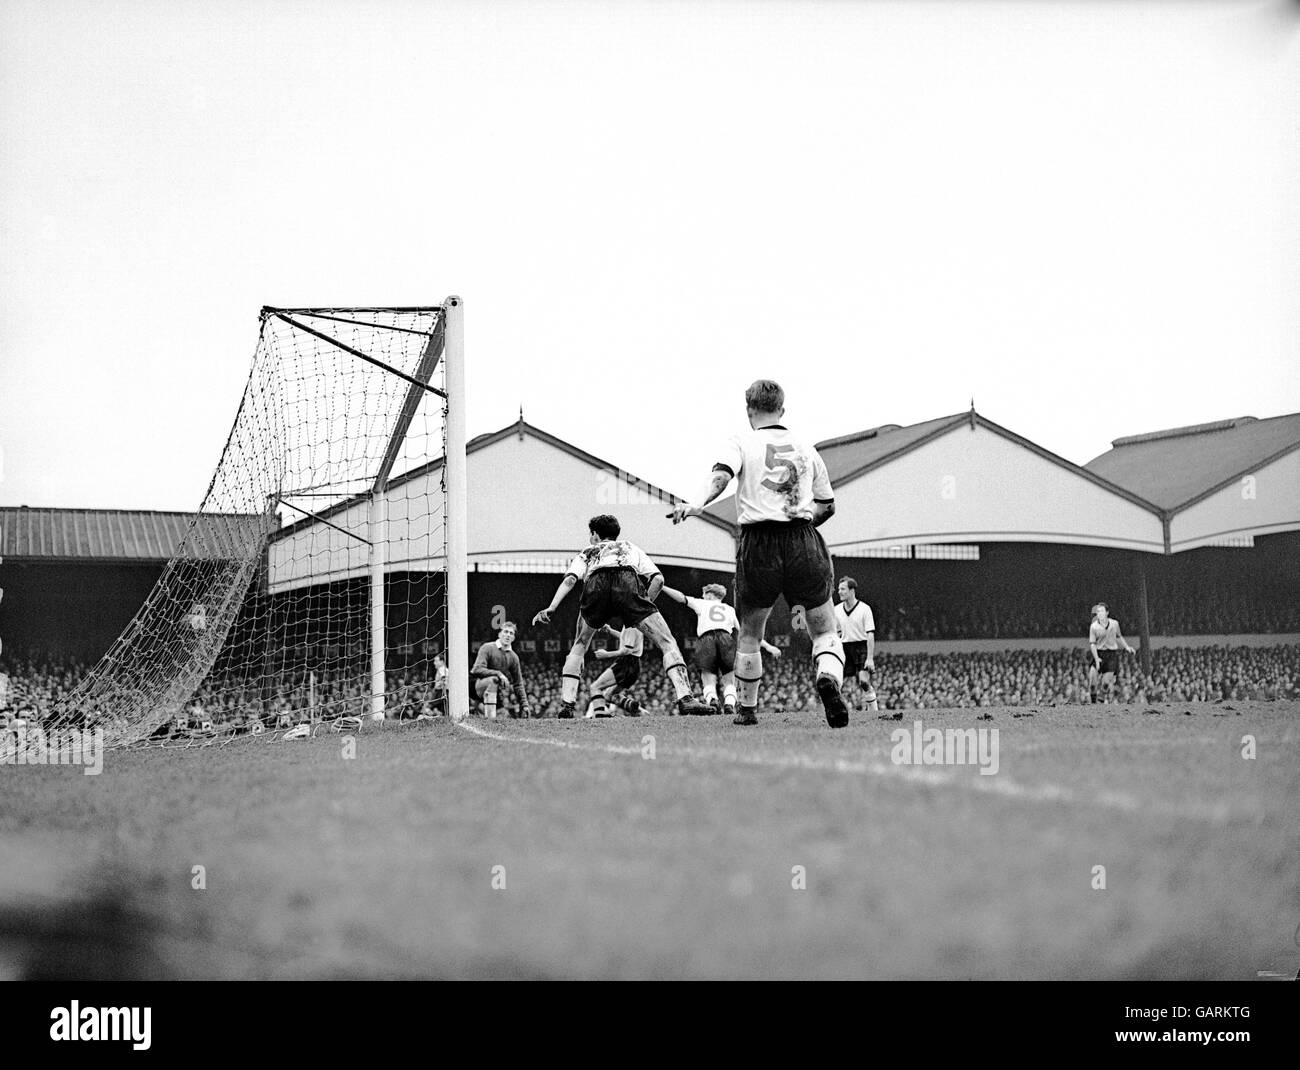 Soccer - FA Cup - Fifth Round - Wolverhampton Wanderers v Darlington - Stock Image